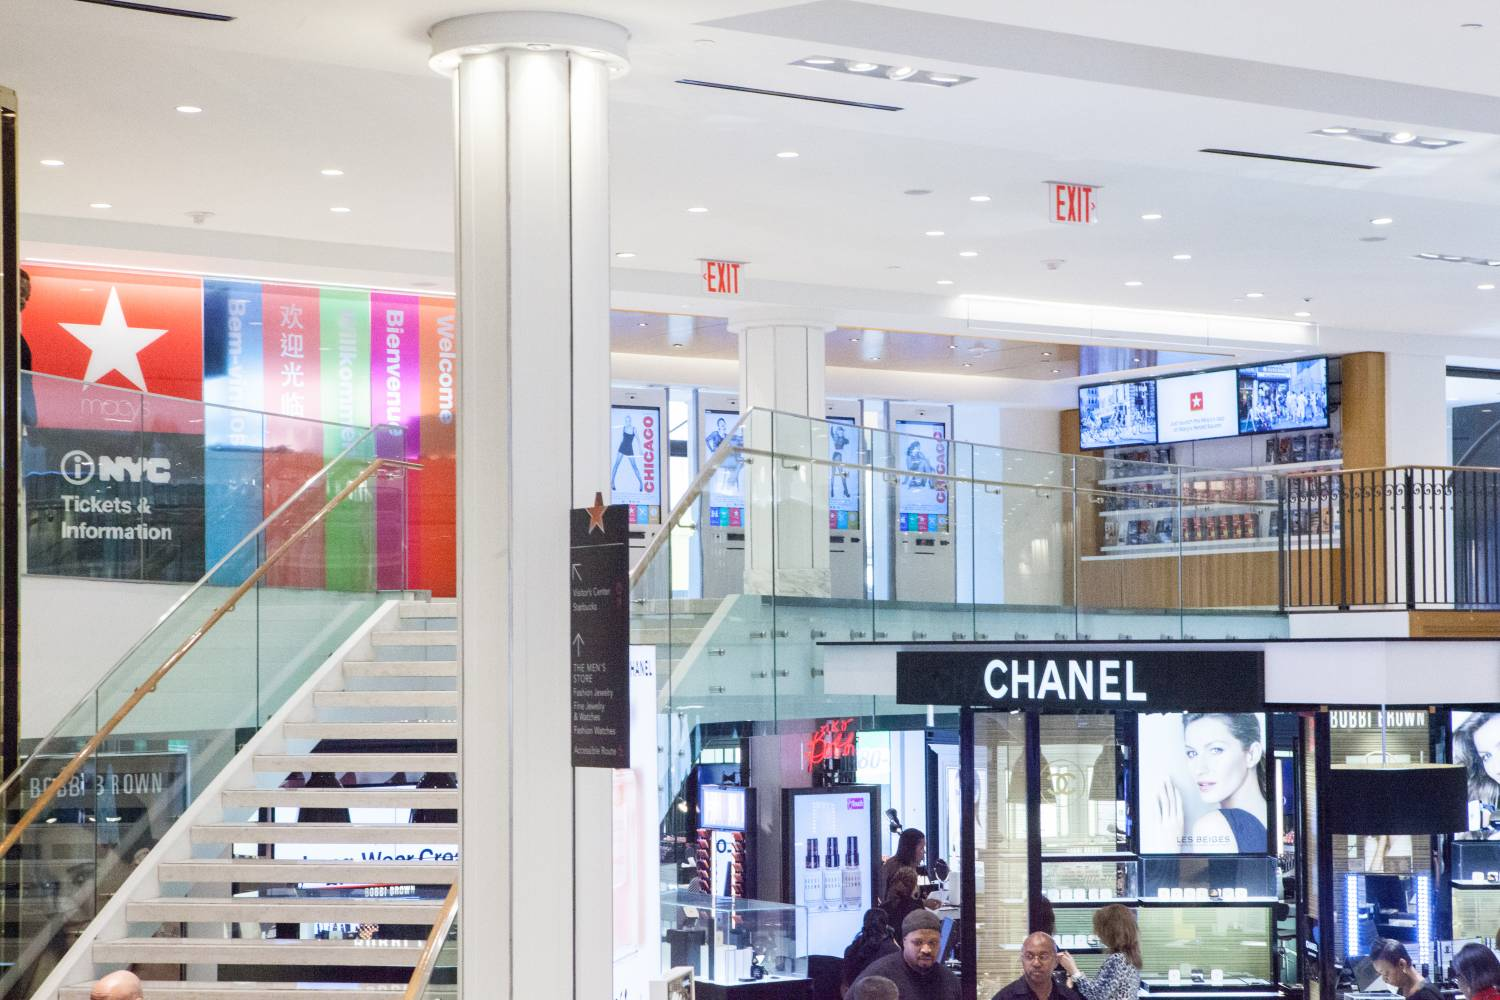 a1c5bca6329d5 Official Information Center at Macy's Herald Square | Venues